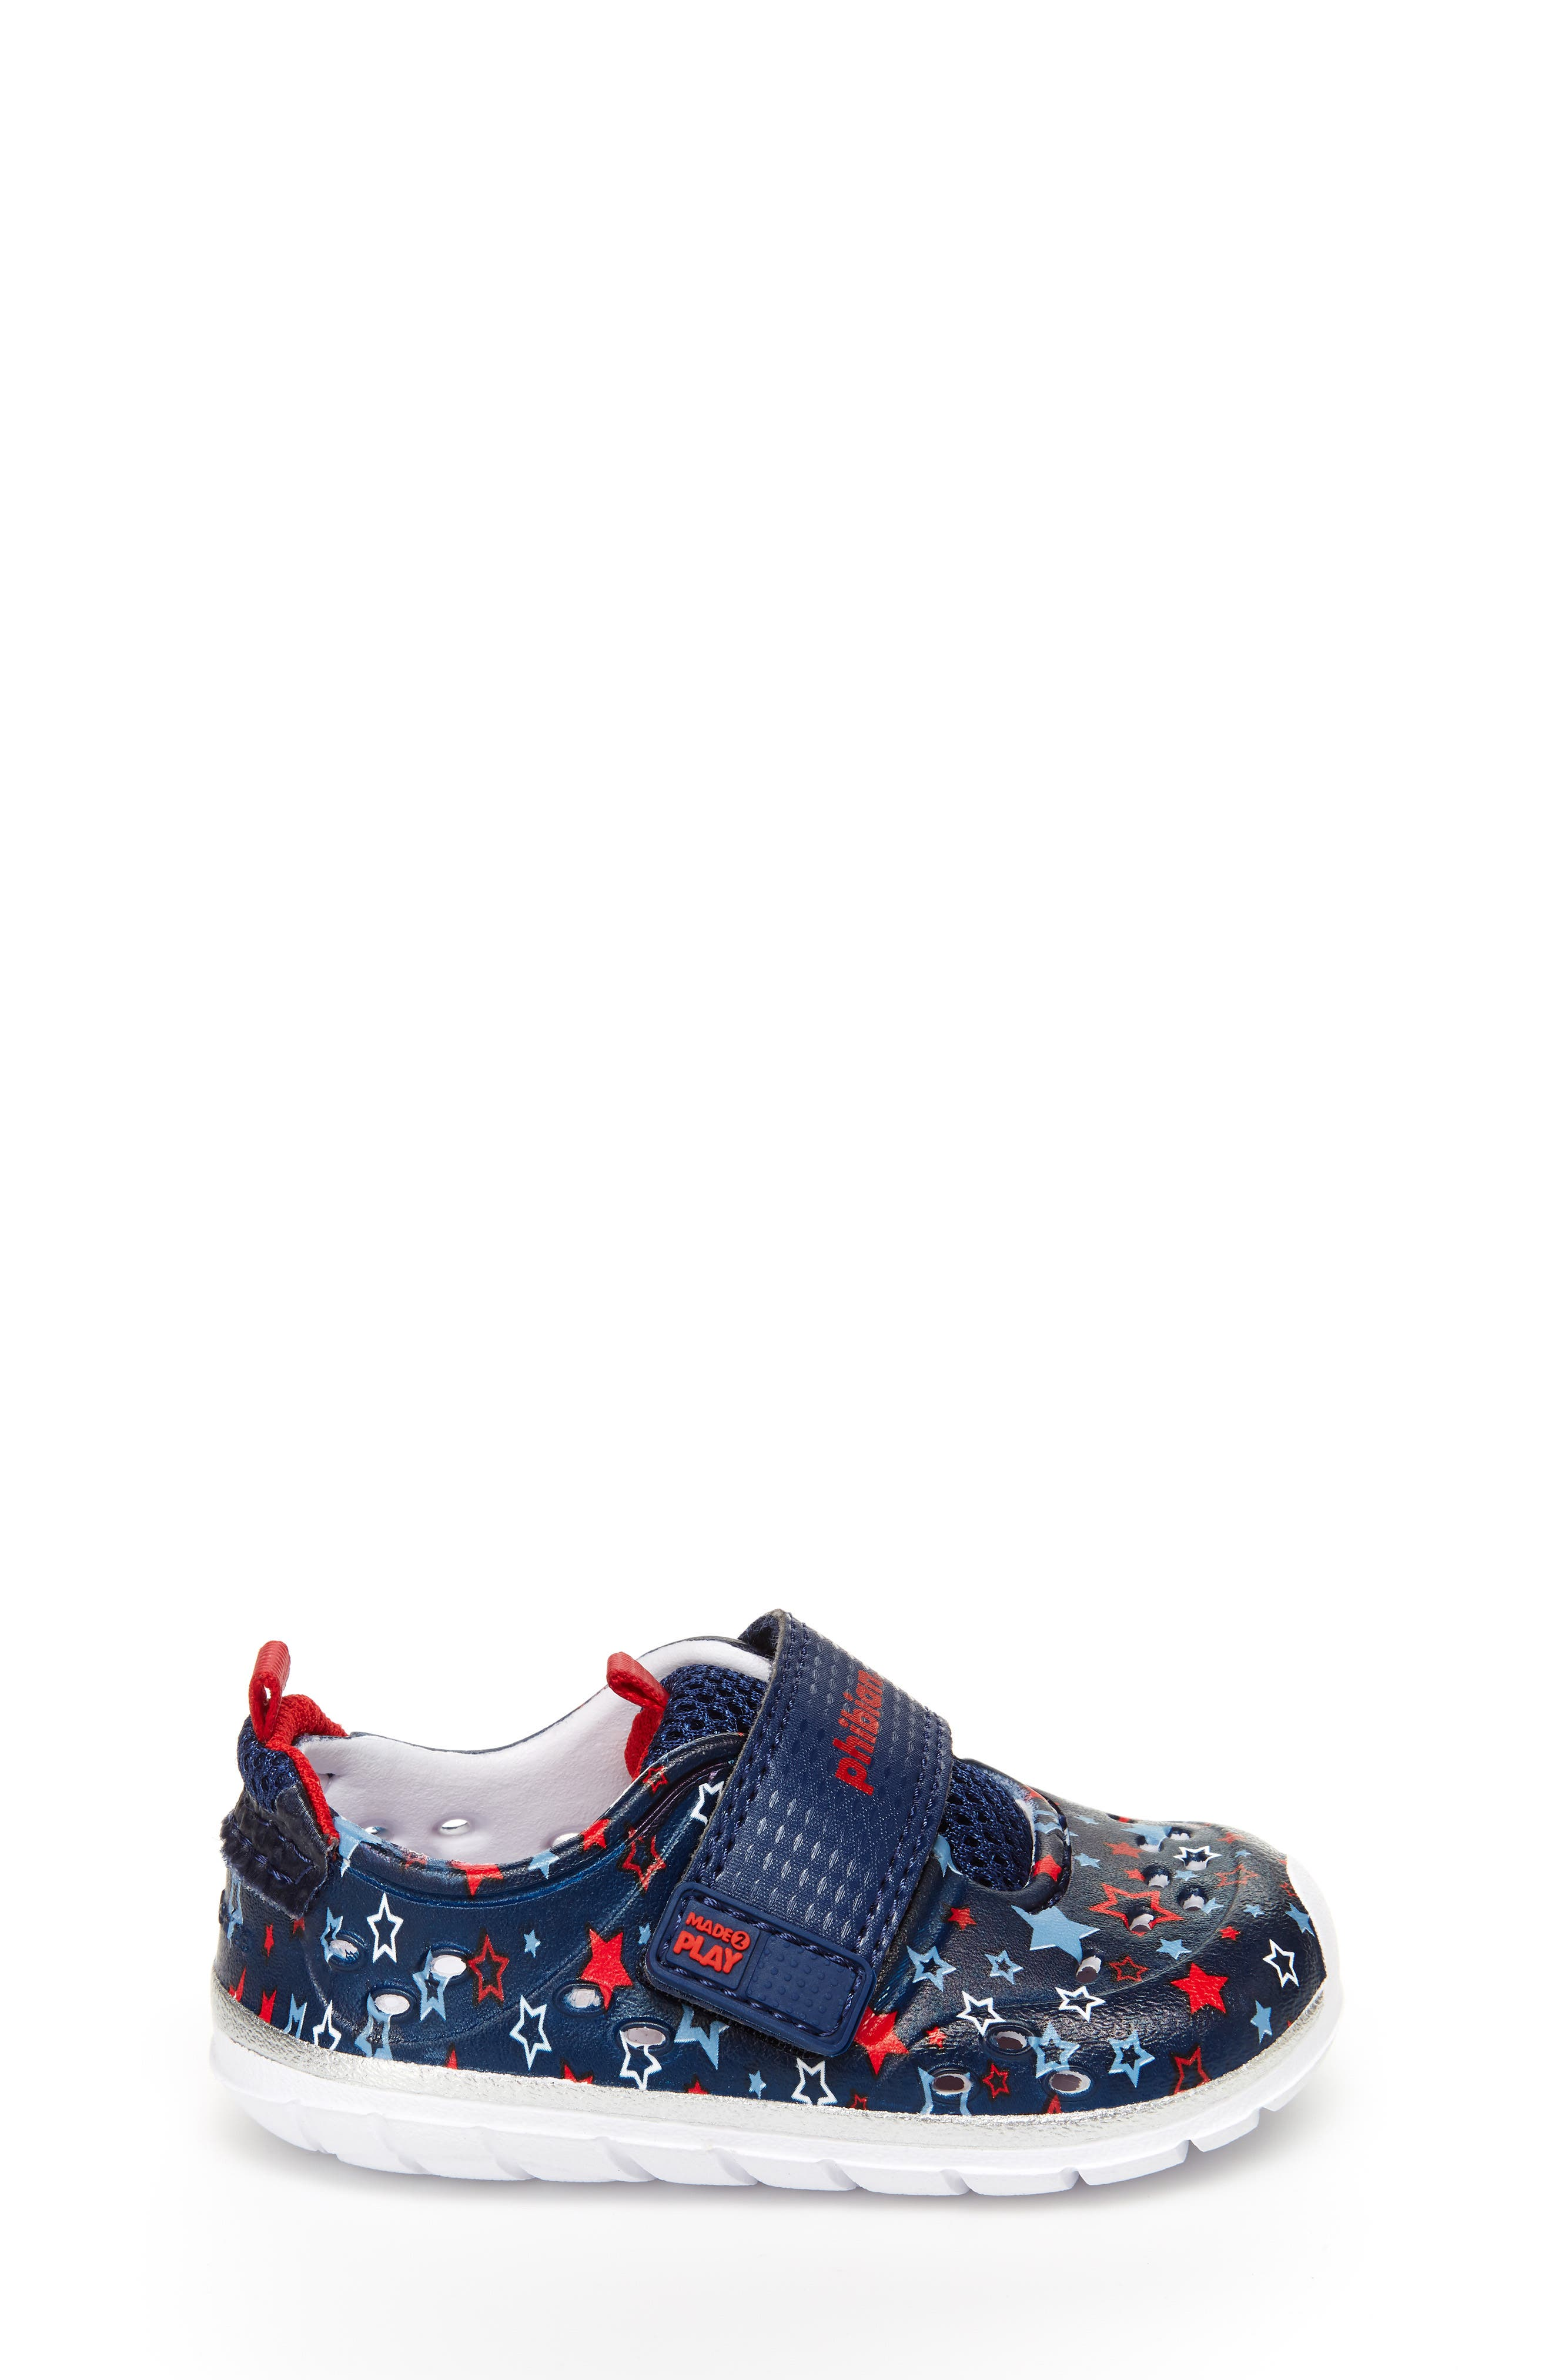 STRIDE RITE, Made2Play<sup>®</sup> Phibian Sneaker, Alternate thumbnail 3, color, NAVY STAR